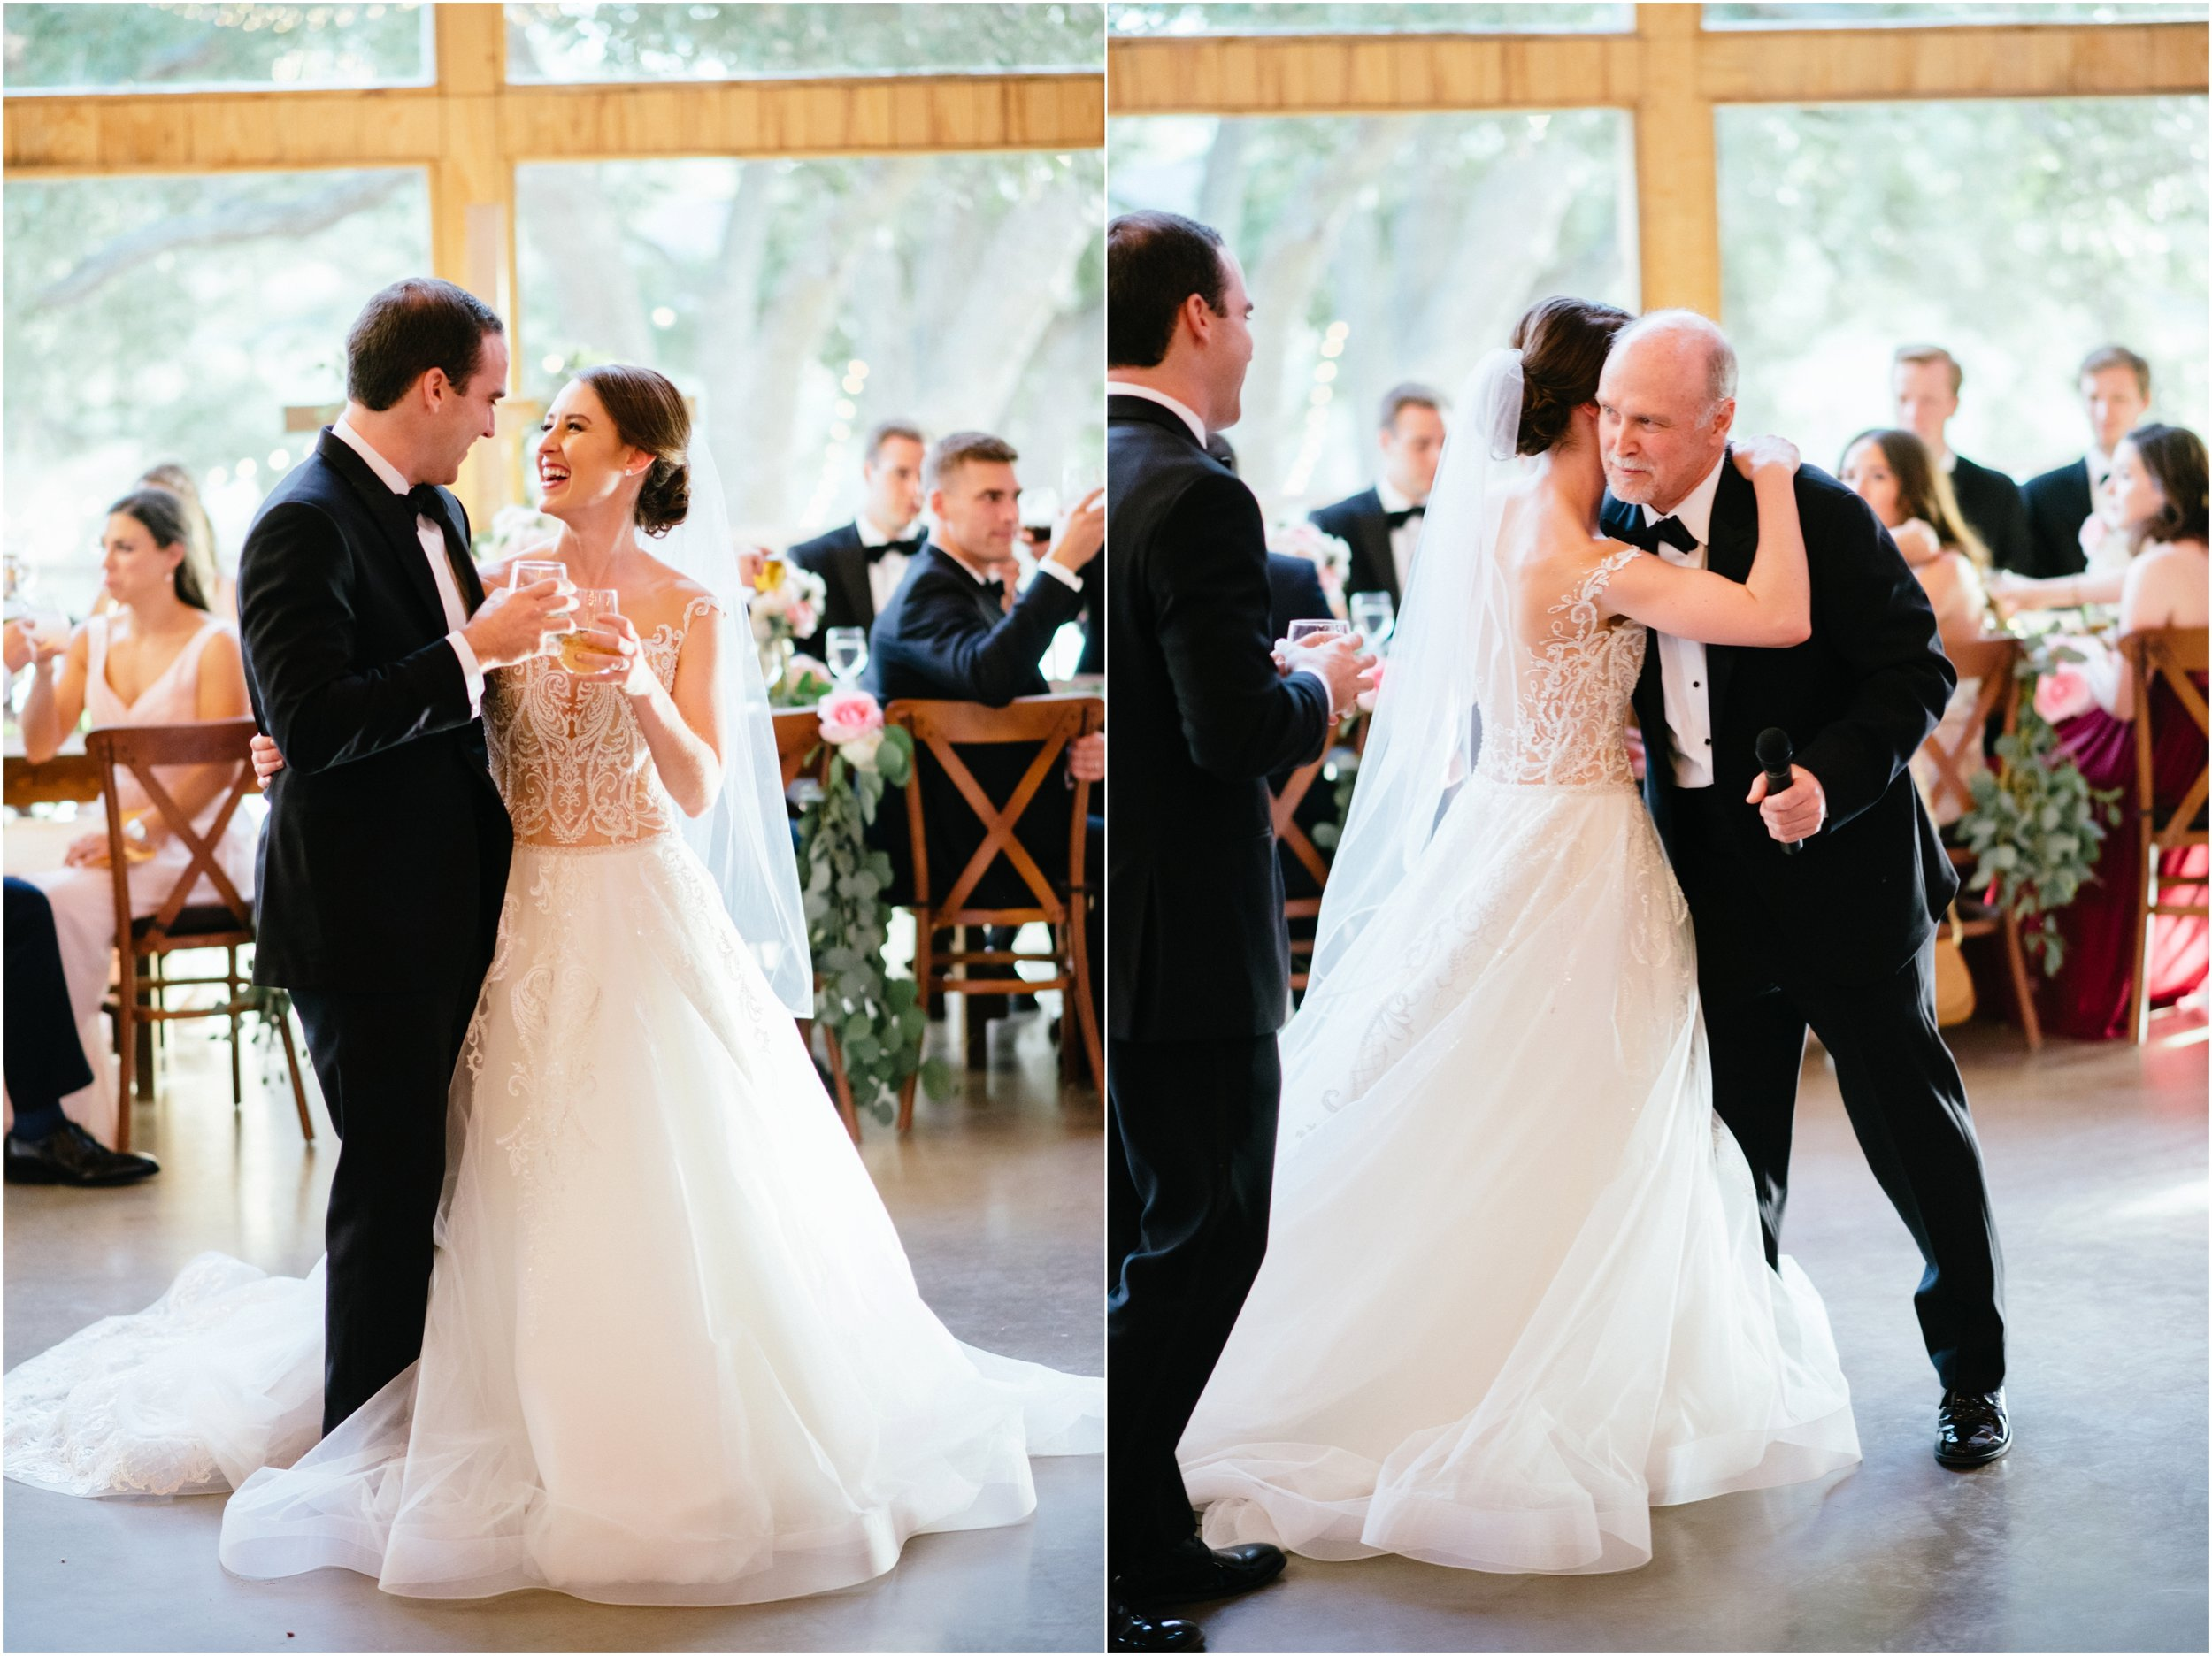 dallasweddingphotographer_fortworthweddingphotographer_texasweddingphotographer_mattandjulieweddings_whiterocklakewedding_KayleighClay_0035.jpg